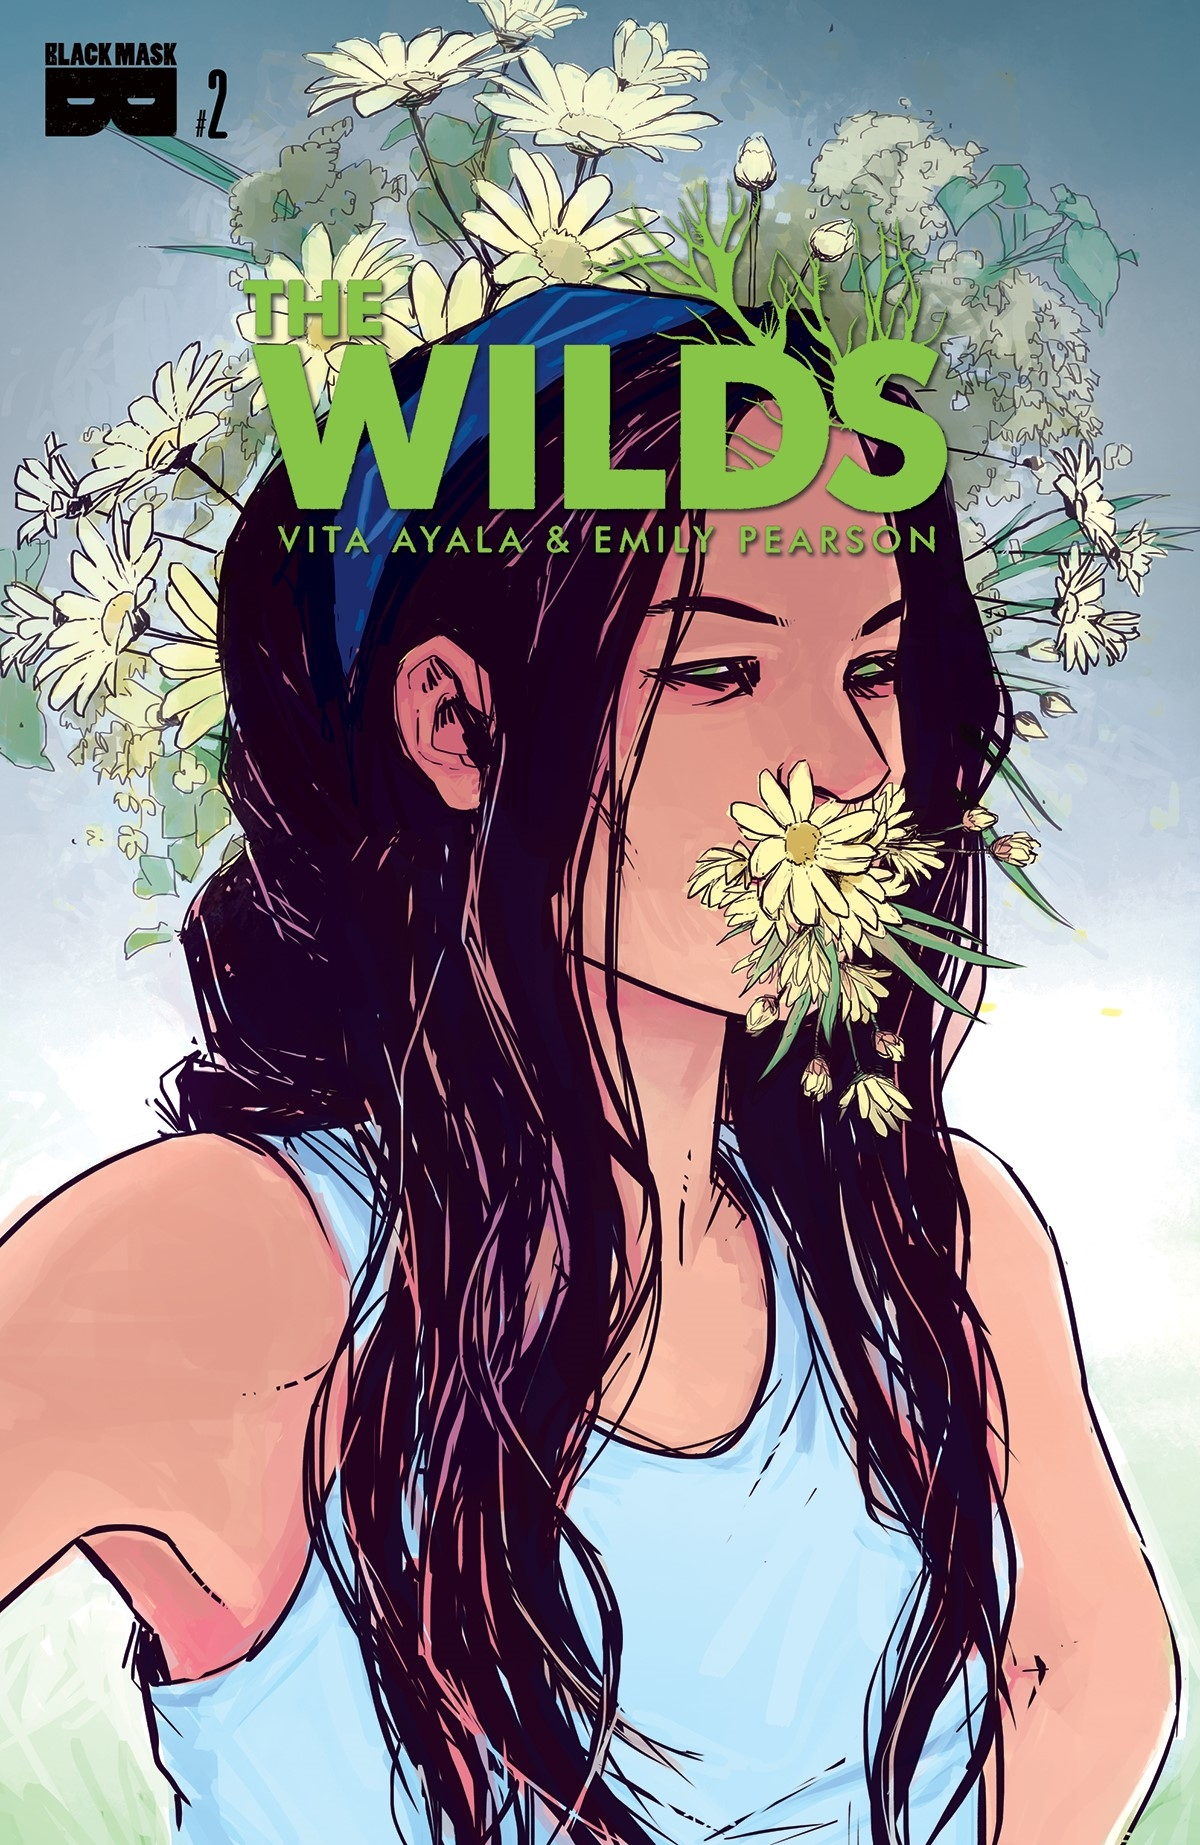 WILDS #2 CVR B NATASHA ALTERICI (MR)